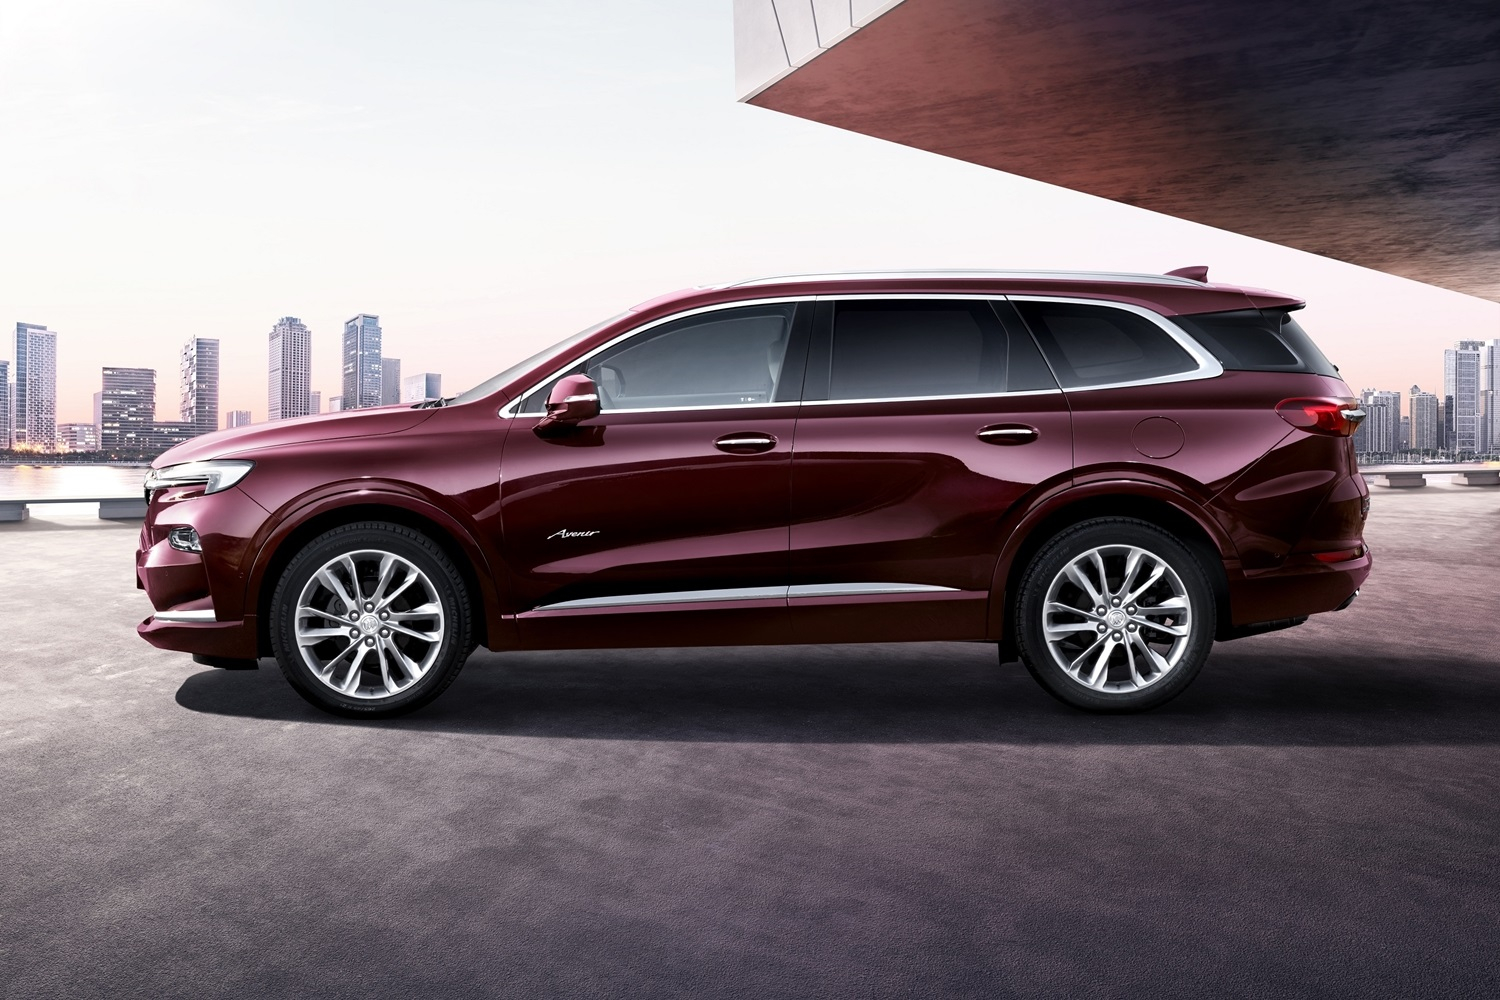 Gm Shows All-New China-Spec Buick Enclave Avenir | Gm Authority 2022 Buick Enclave Cost, Build, Bolt Pattern